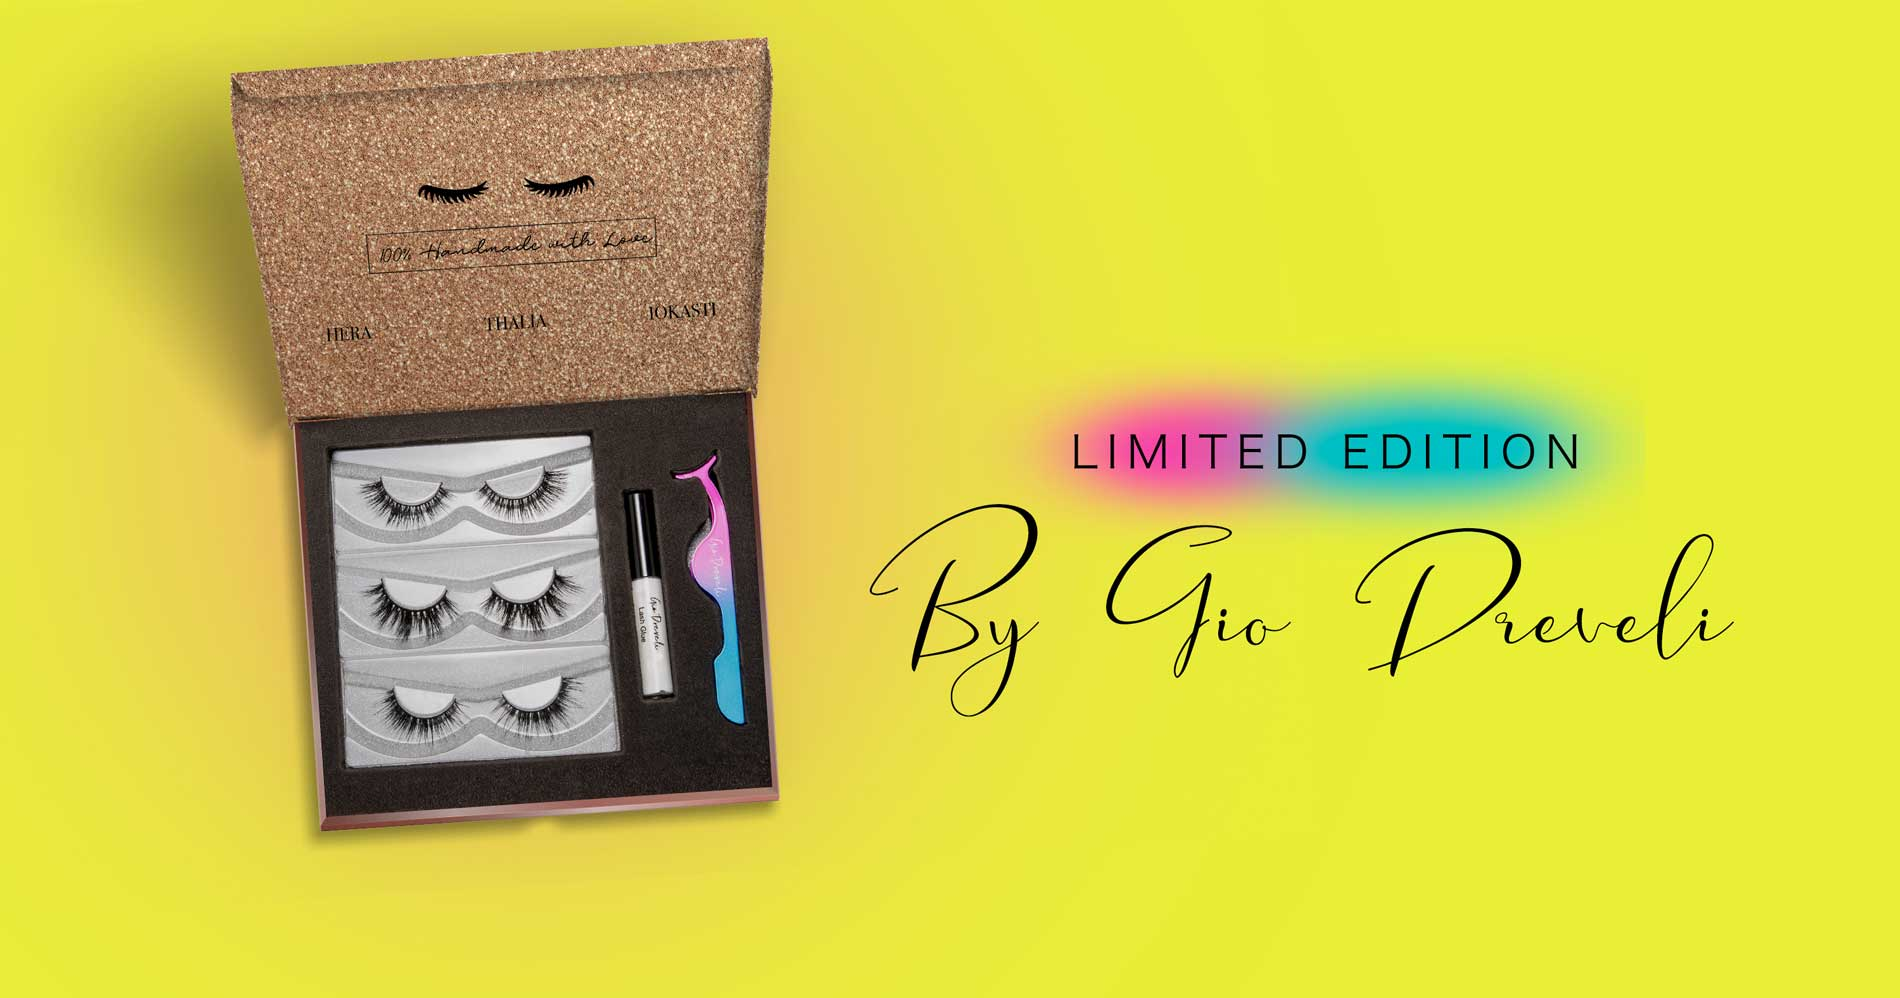 giodreveli-limited-eyelashes